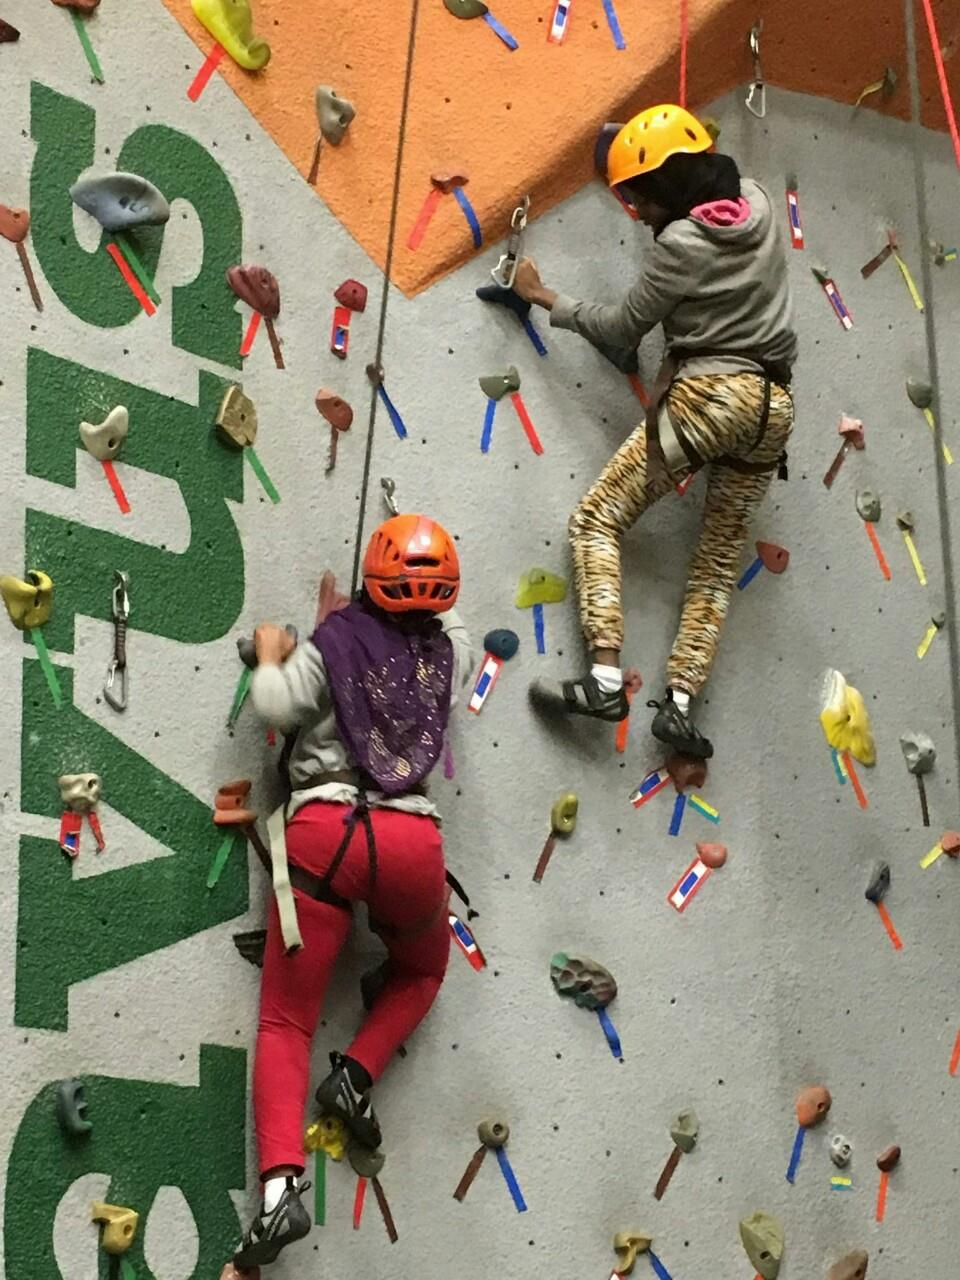 Photo.Climbing Wall - Jenn Carter.jpg